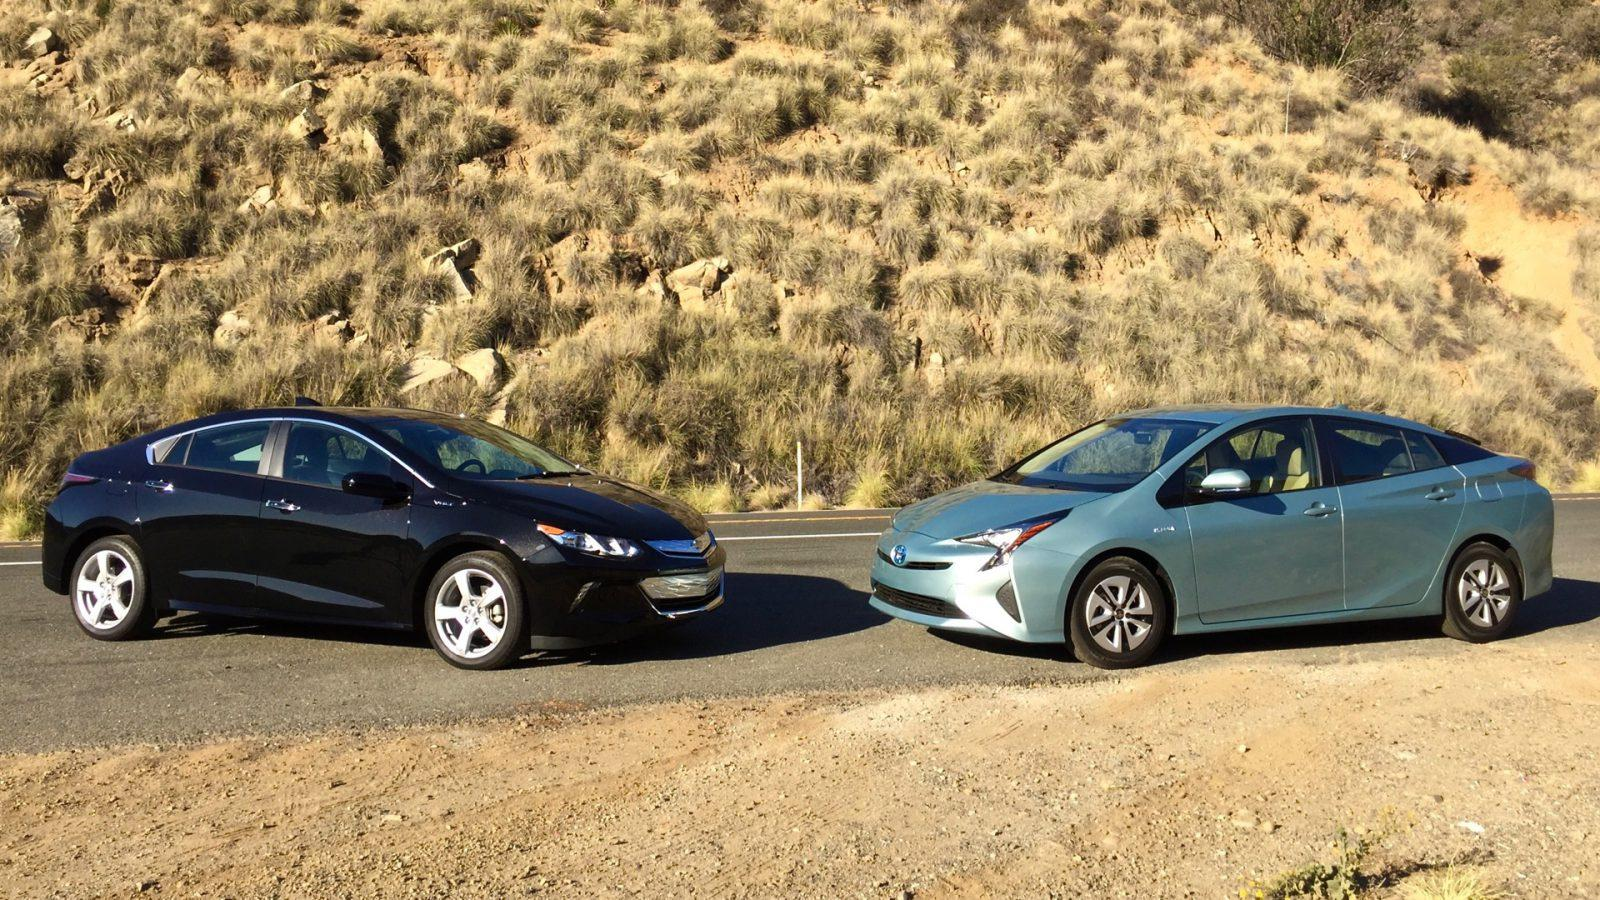 All About Honda Insight Vs Toyota Prius